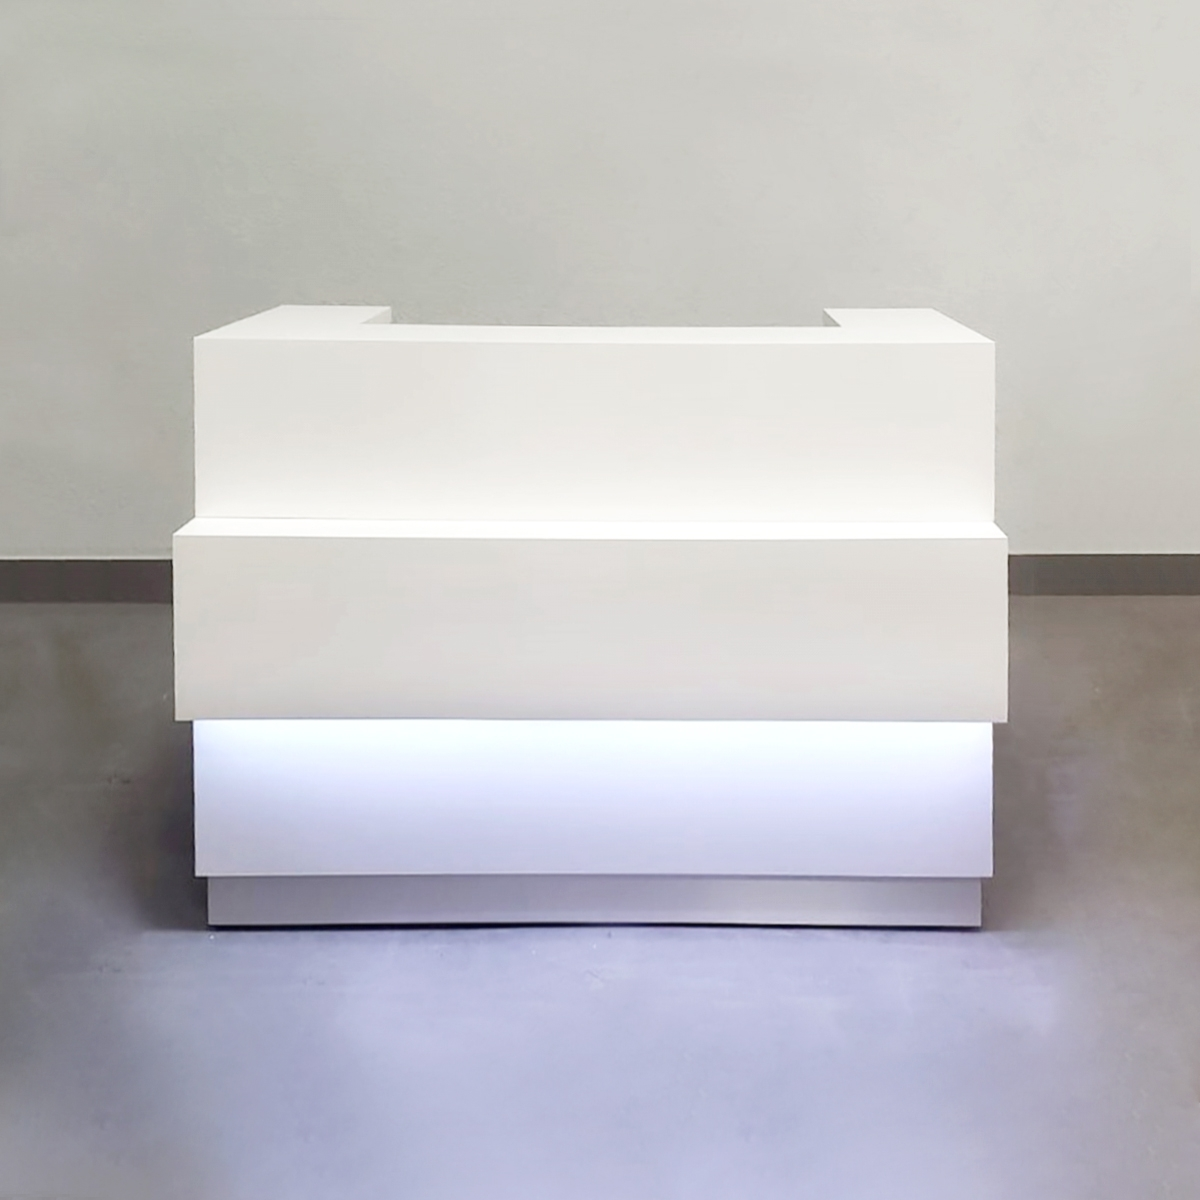 Floridian Custom Reception Desk